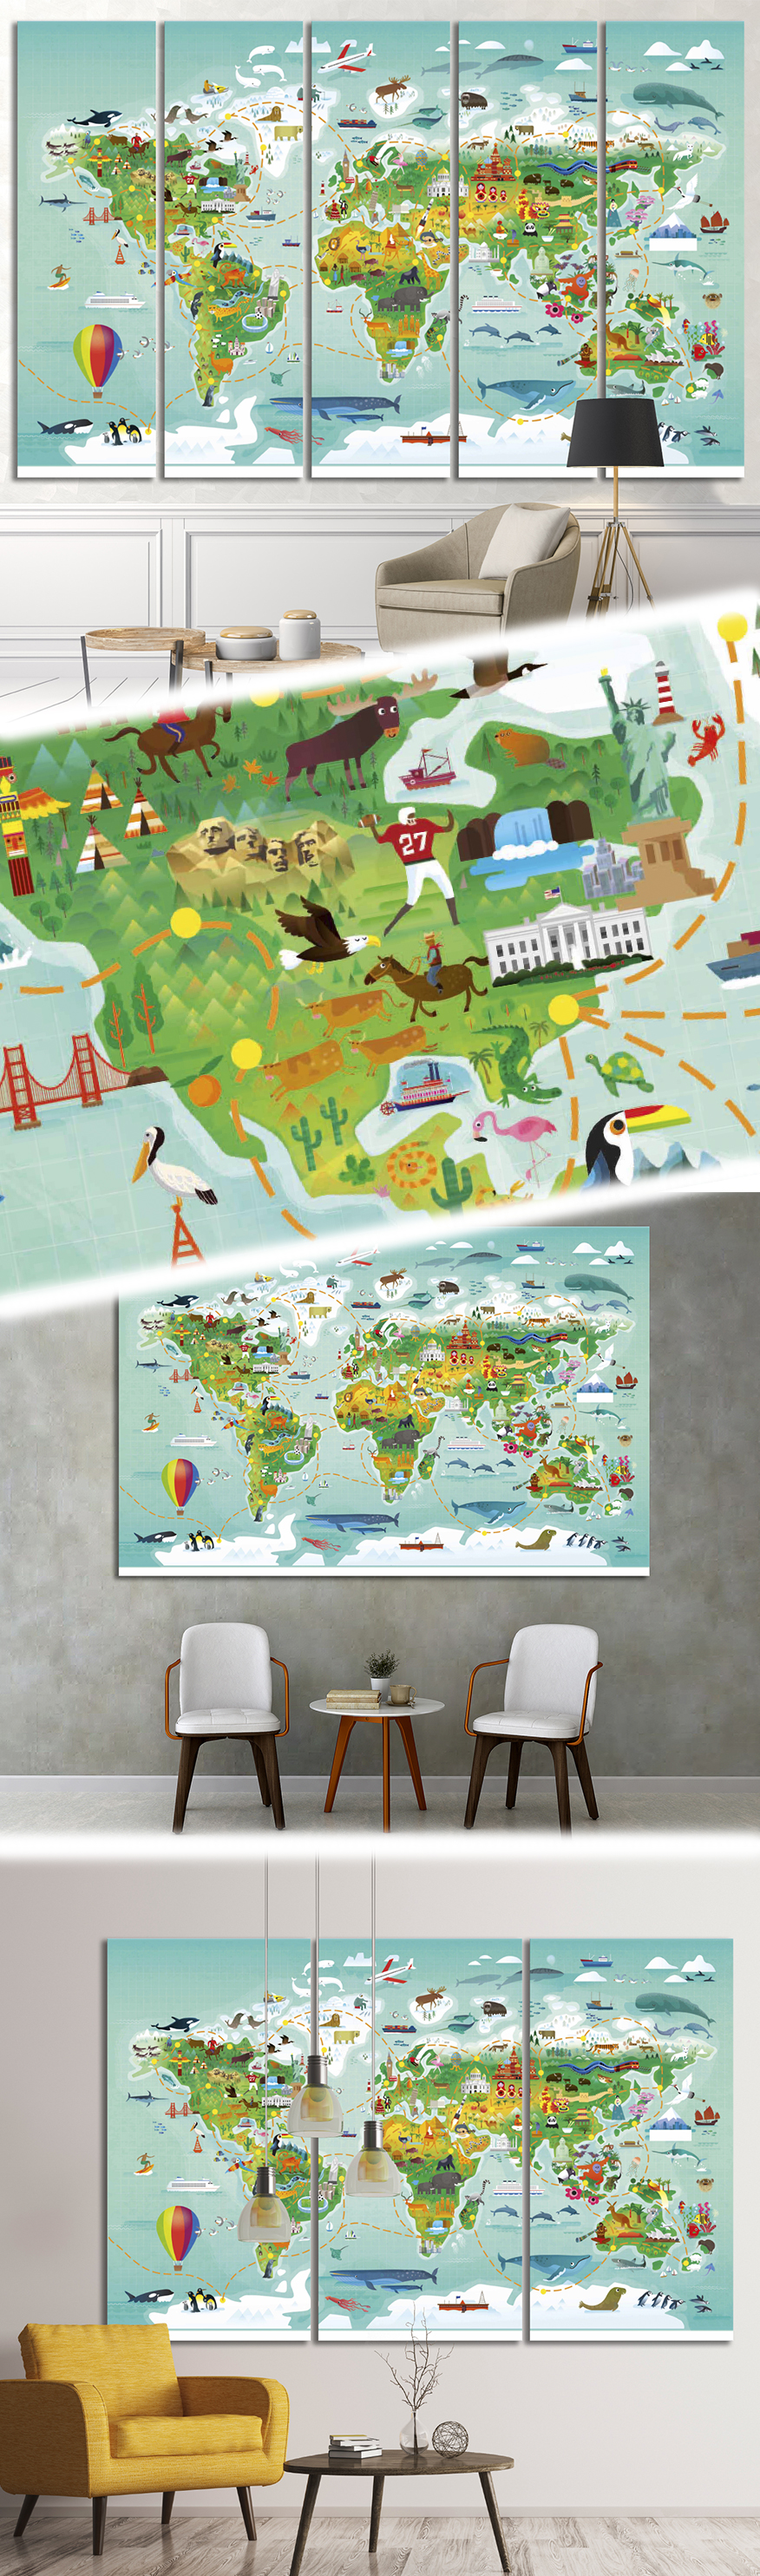 World map for kids32 Canvas Print World